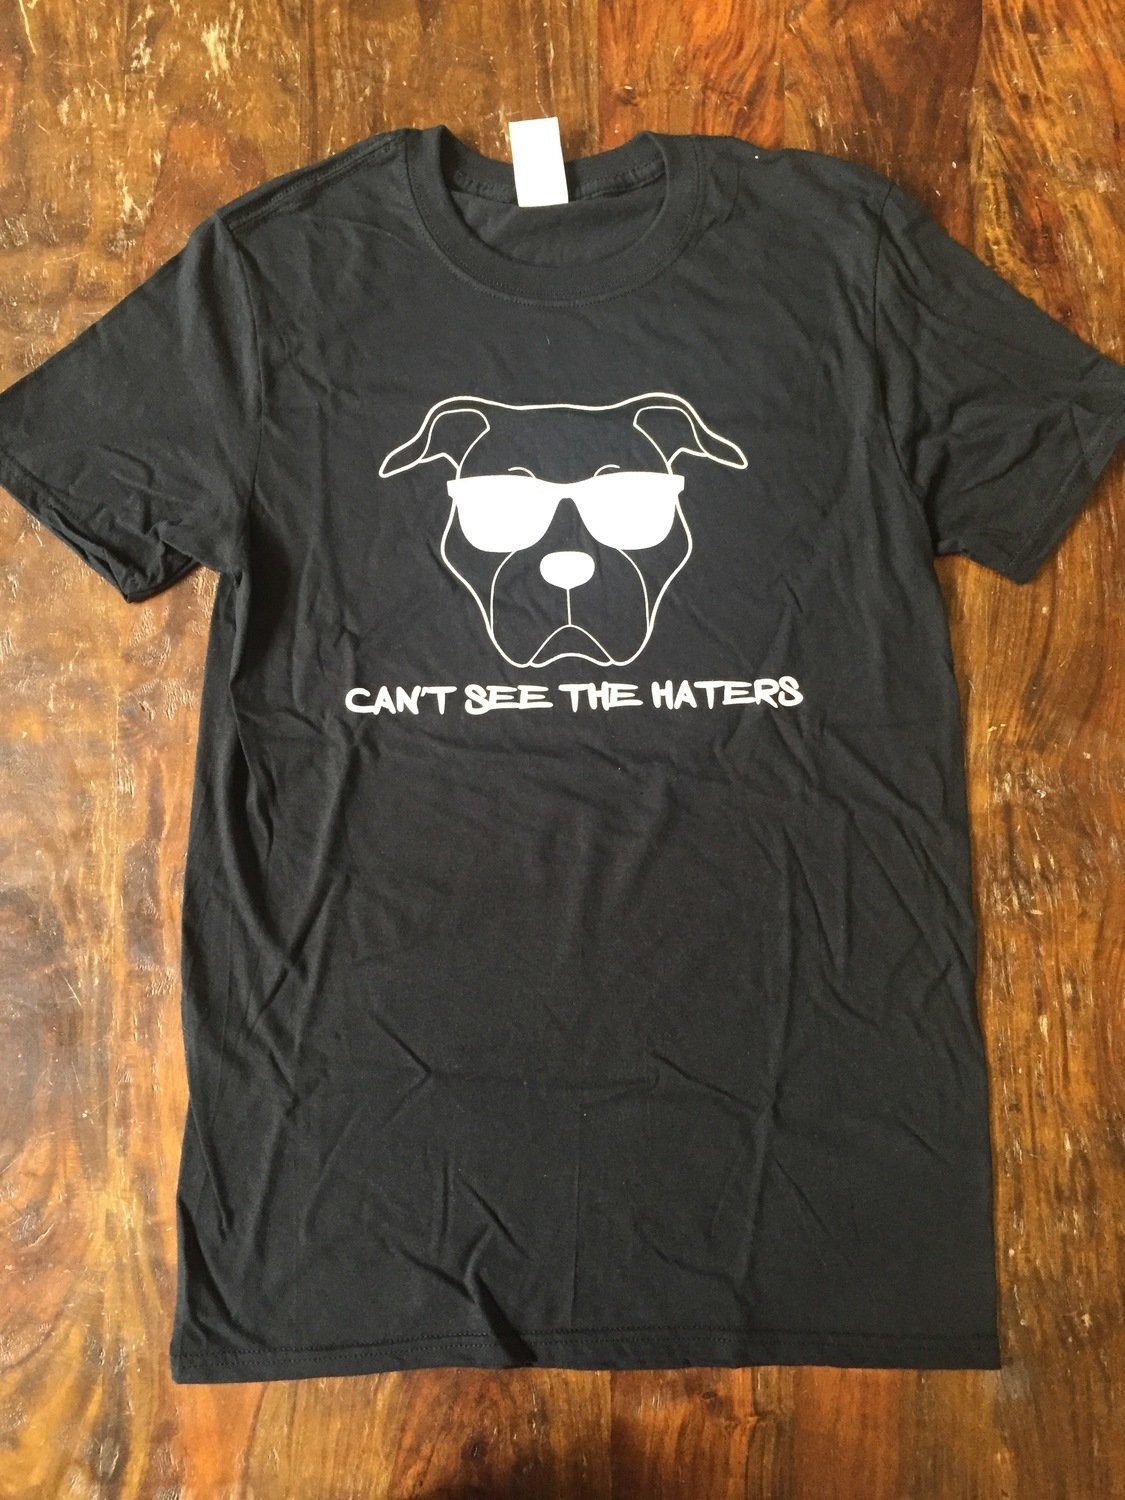 Mens Black T-Shirt- Can't See the Haters - Small